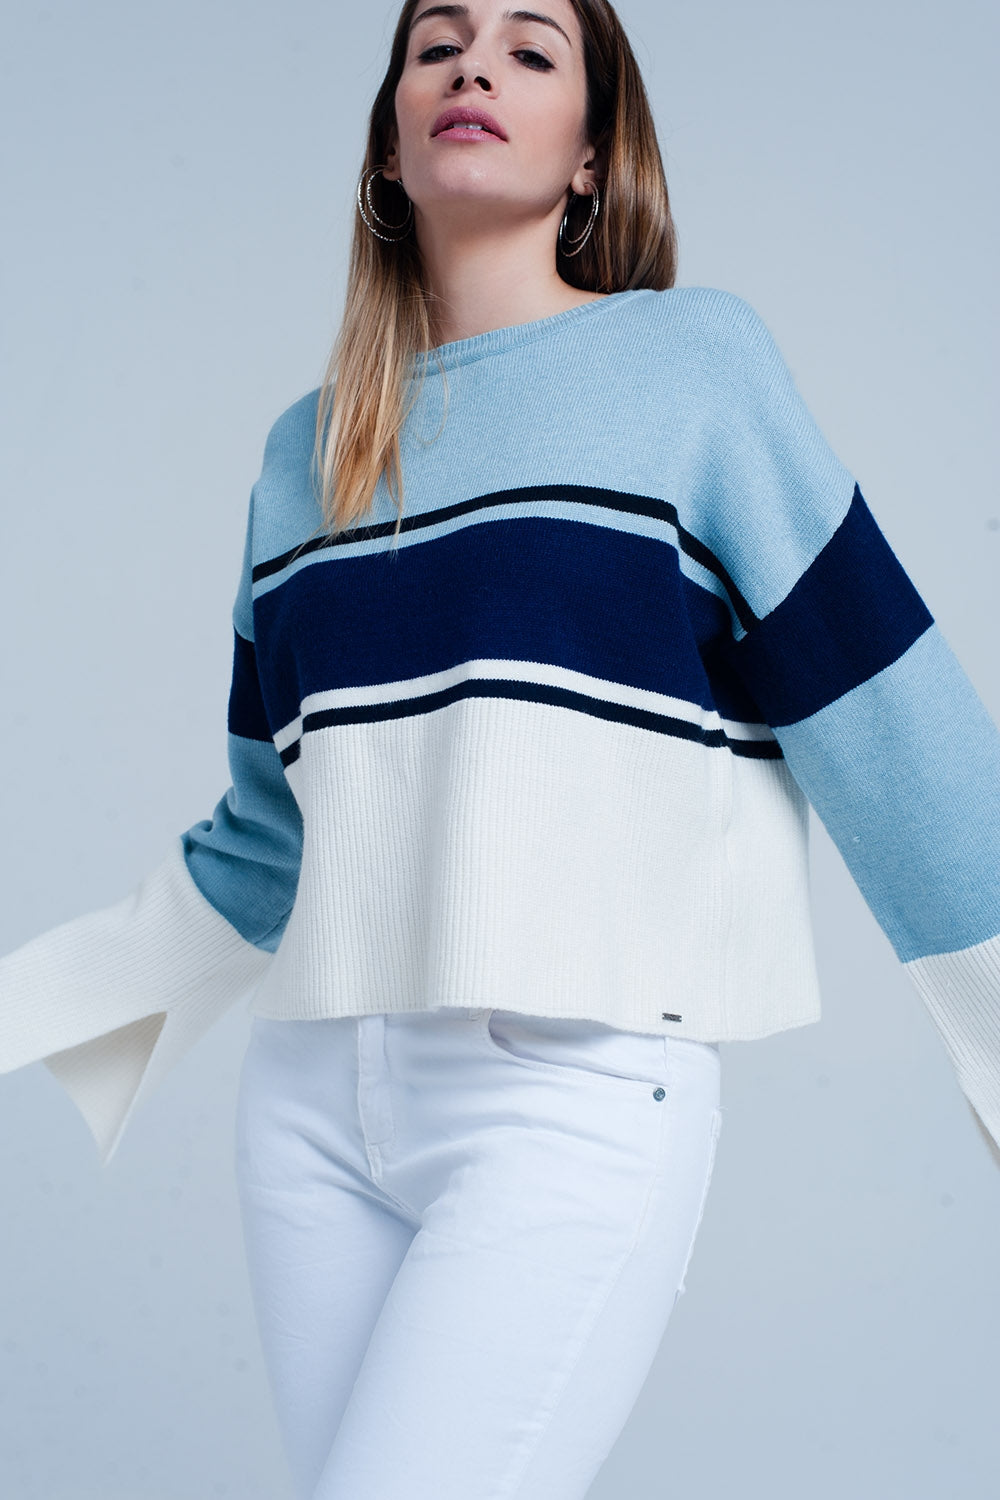 Blue Striped Sweater With Flare Sleeves-Women - Apparel - Sweaters - Pull Over-Product Details Loose fitting jumper of a strong mix of fabrics striped in light blue and dark blue with a ribbed knit edge on the hip and sleeve endings in cream color. The pullover has a round crew neck and long and wide flare sleeves.-Keyomi-Sook